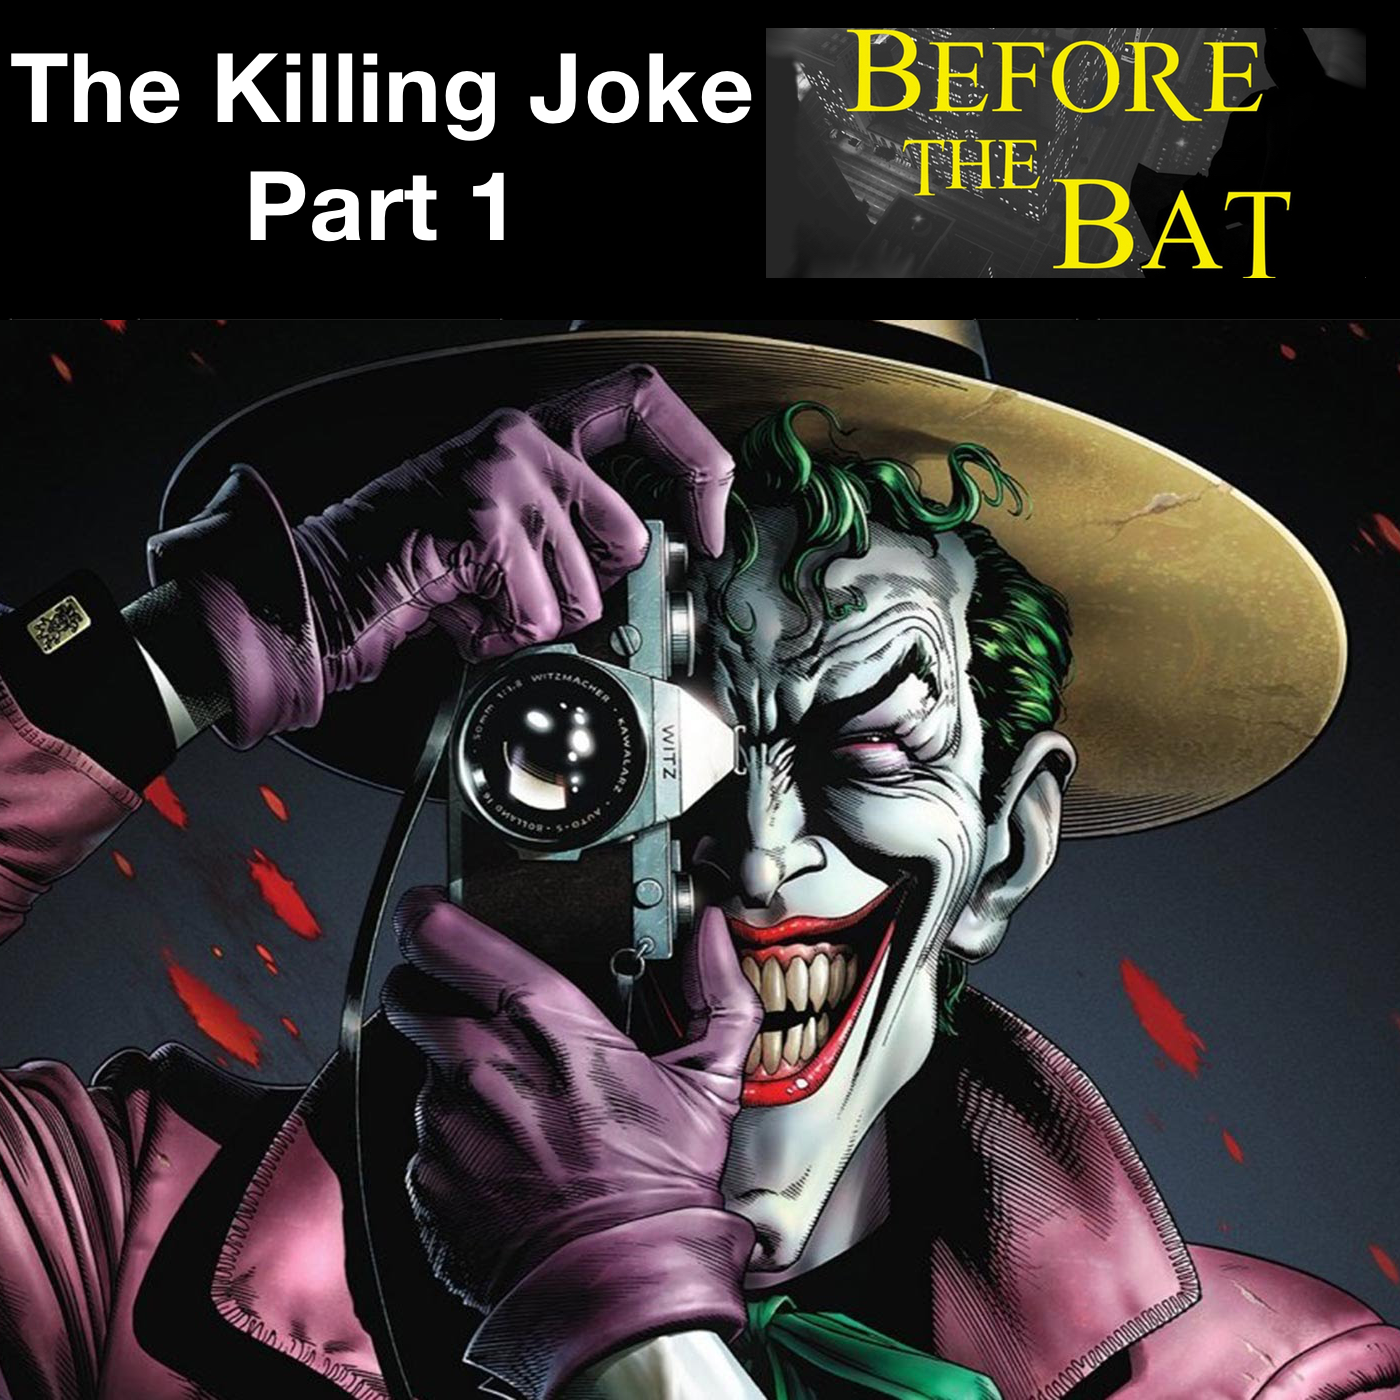 Before the Bat Special—Batman: The Killing Joke Part 1 (The Comic Book)